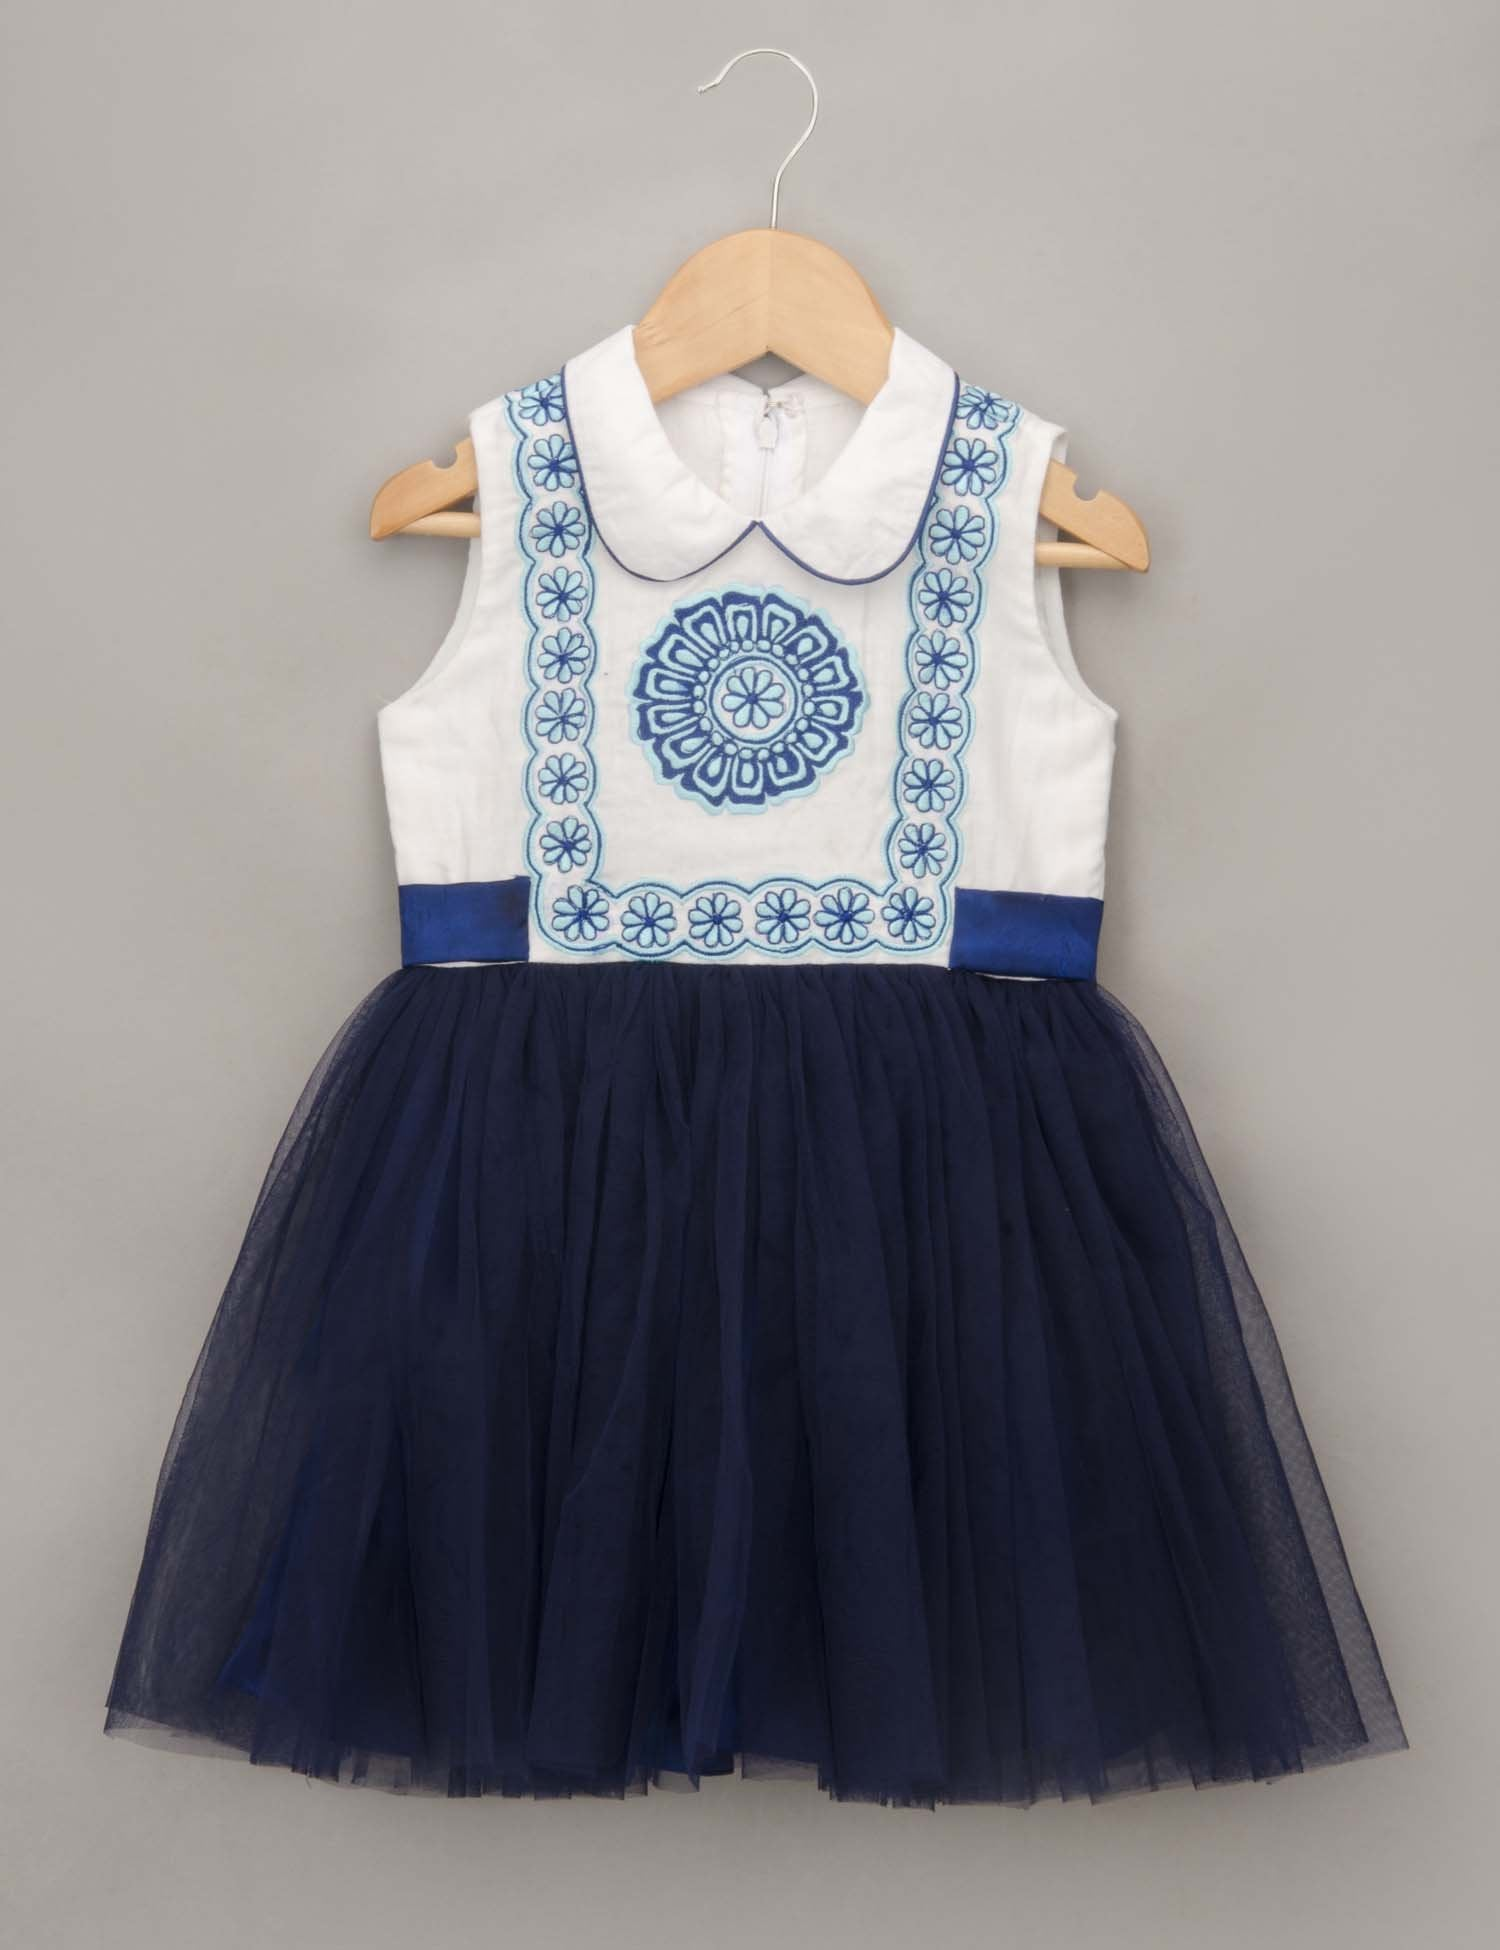 2d2ac93ed0 Blue Dress with Center Embroidered Motif for Girls